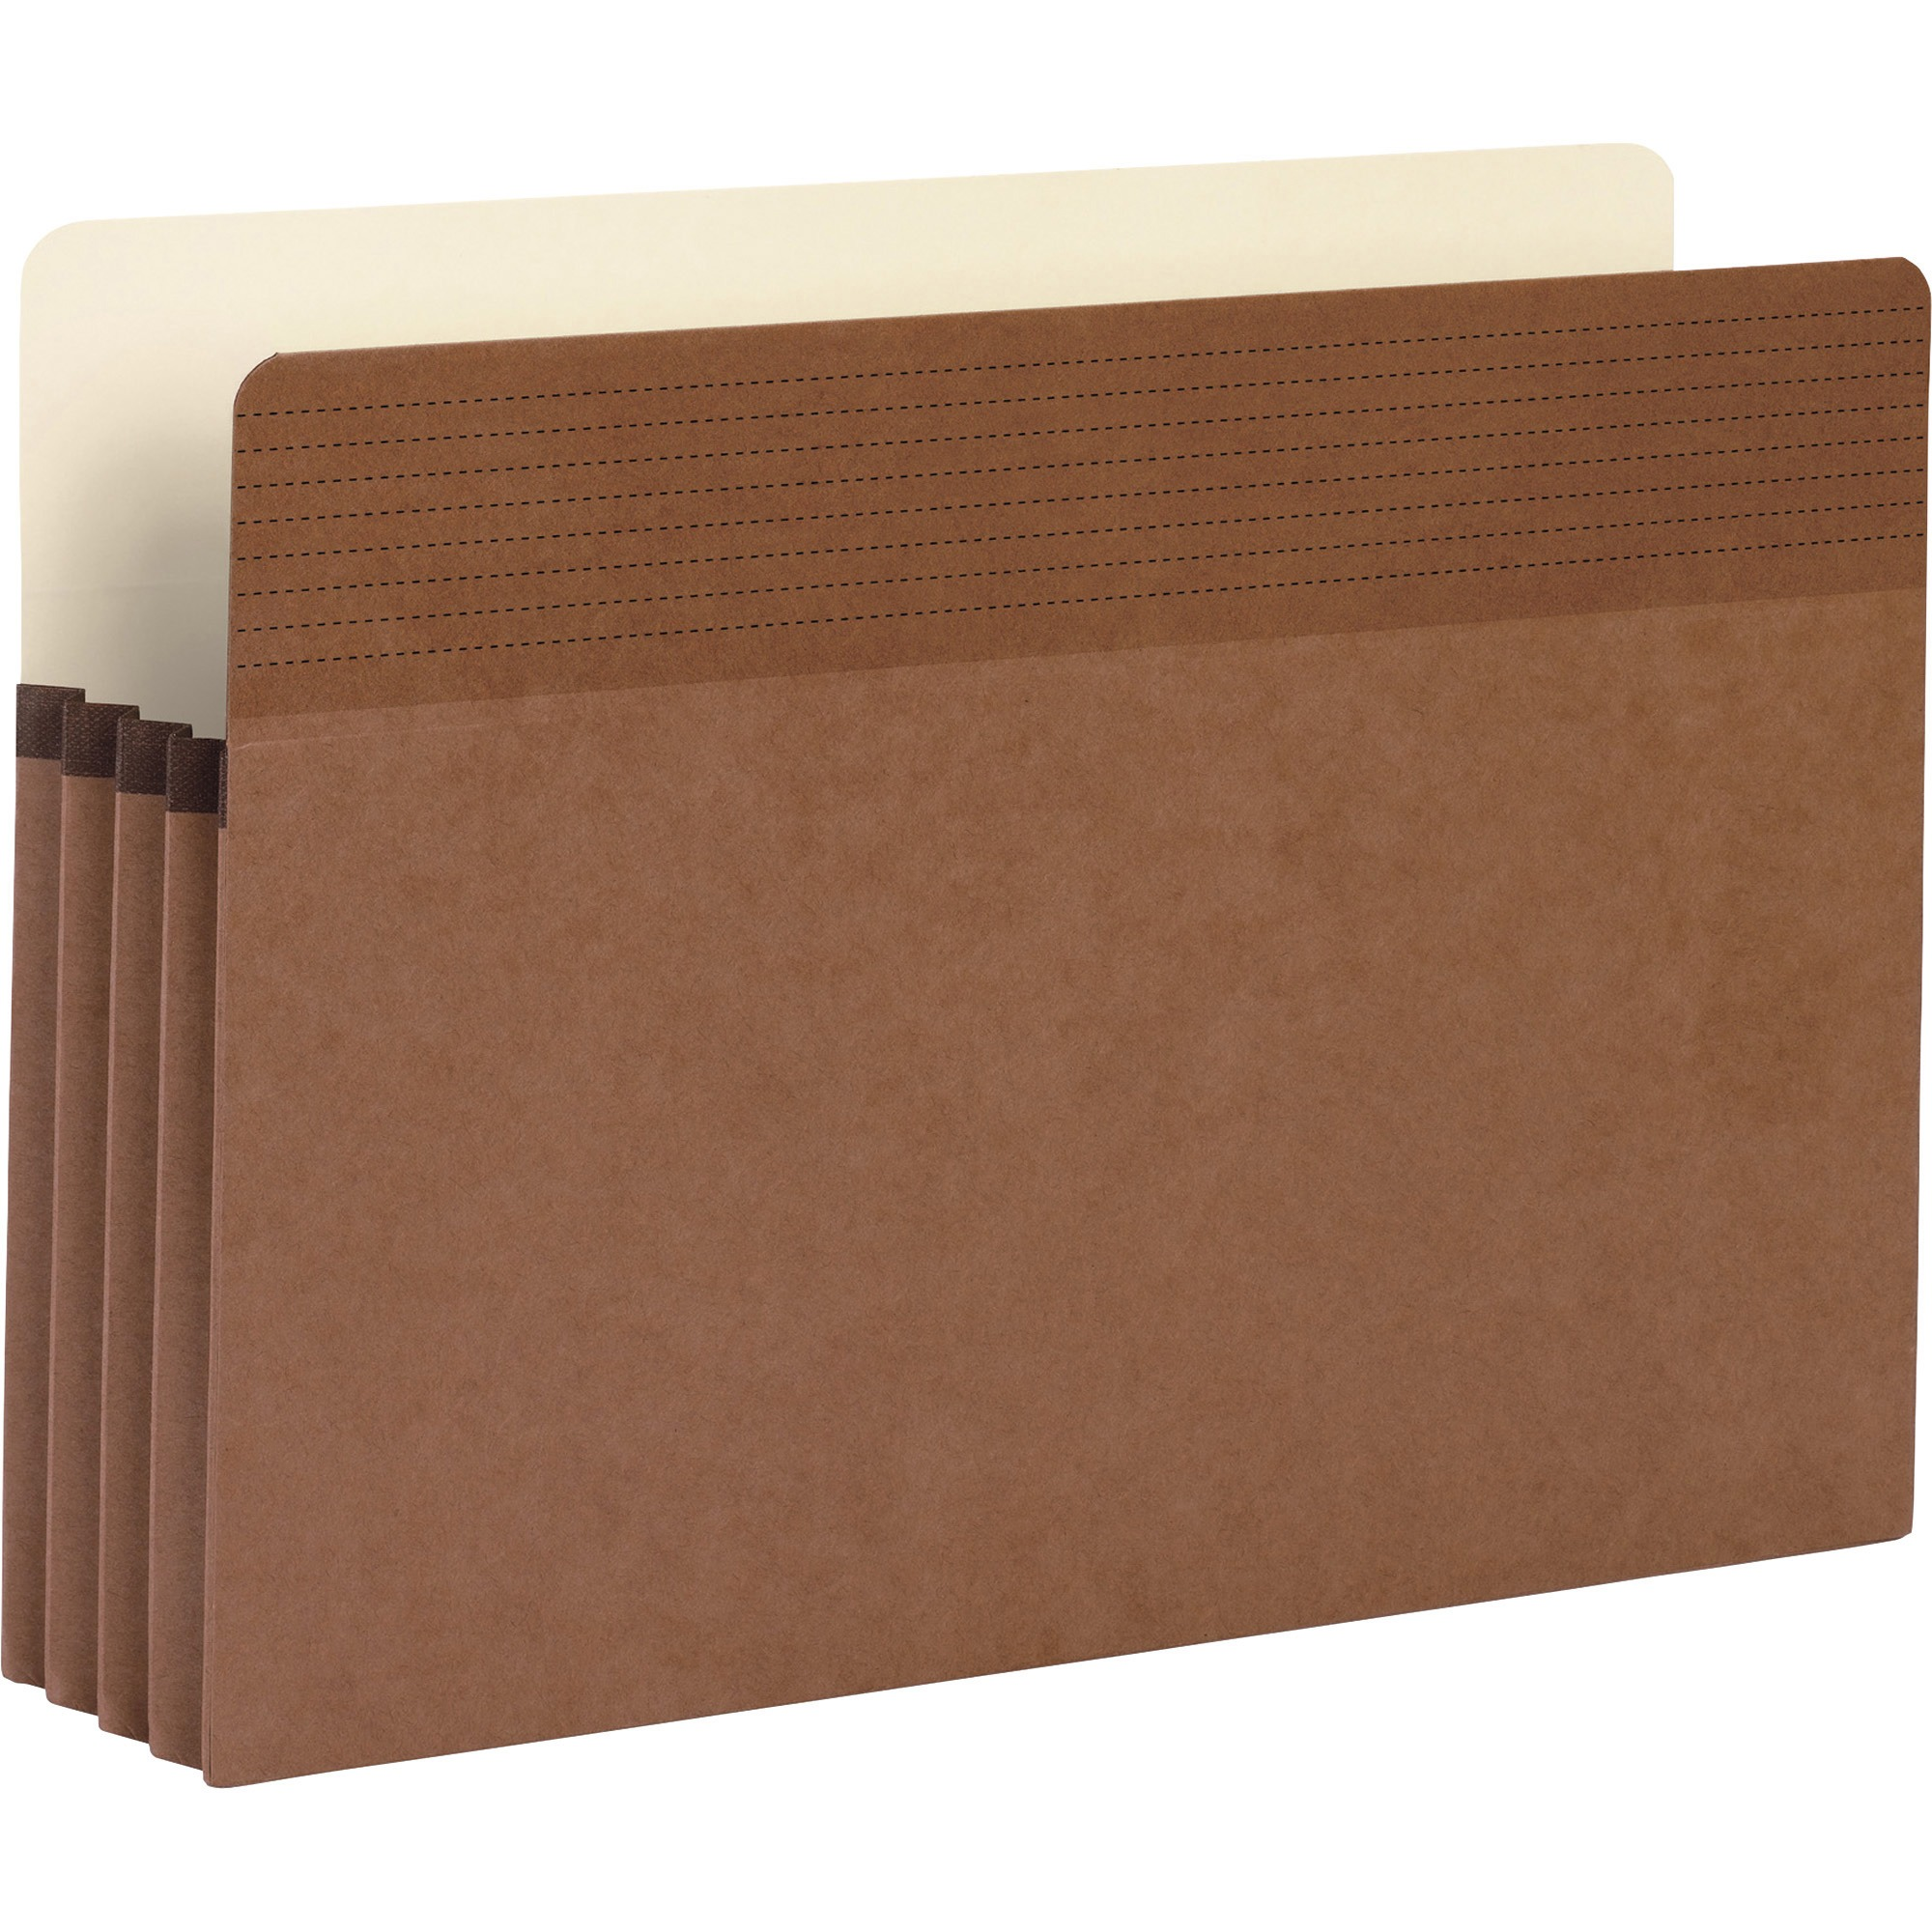 Business Source, BSN65794, Redrope Legal Expanding File Pockets, 25 / Box, Redrope